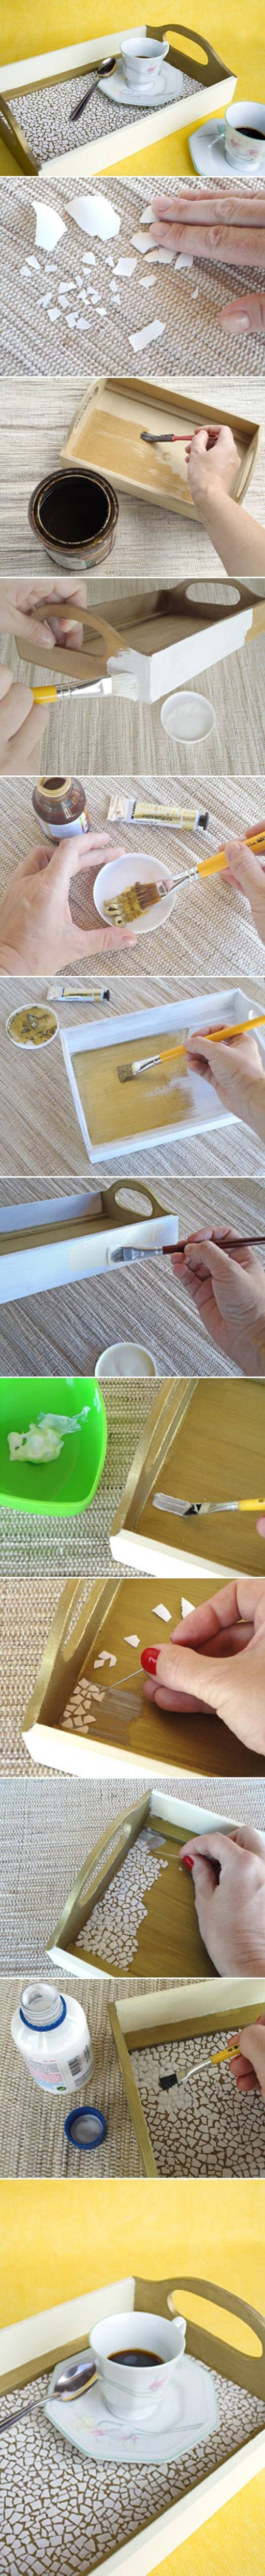 How to make Eggshell Mosaic Coffee Tray step by step DIY tutorial instructions